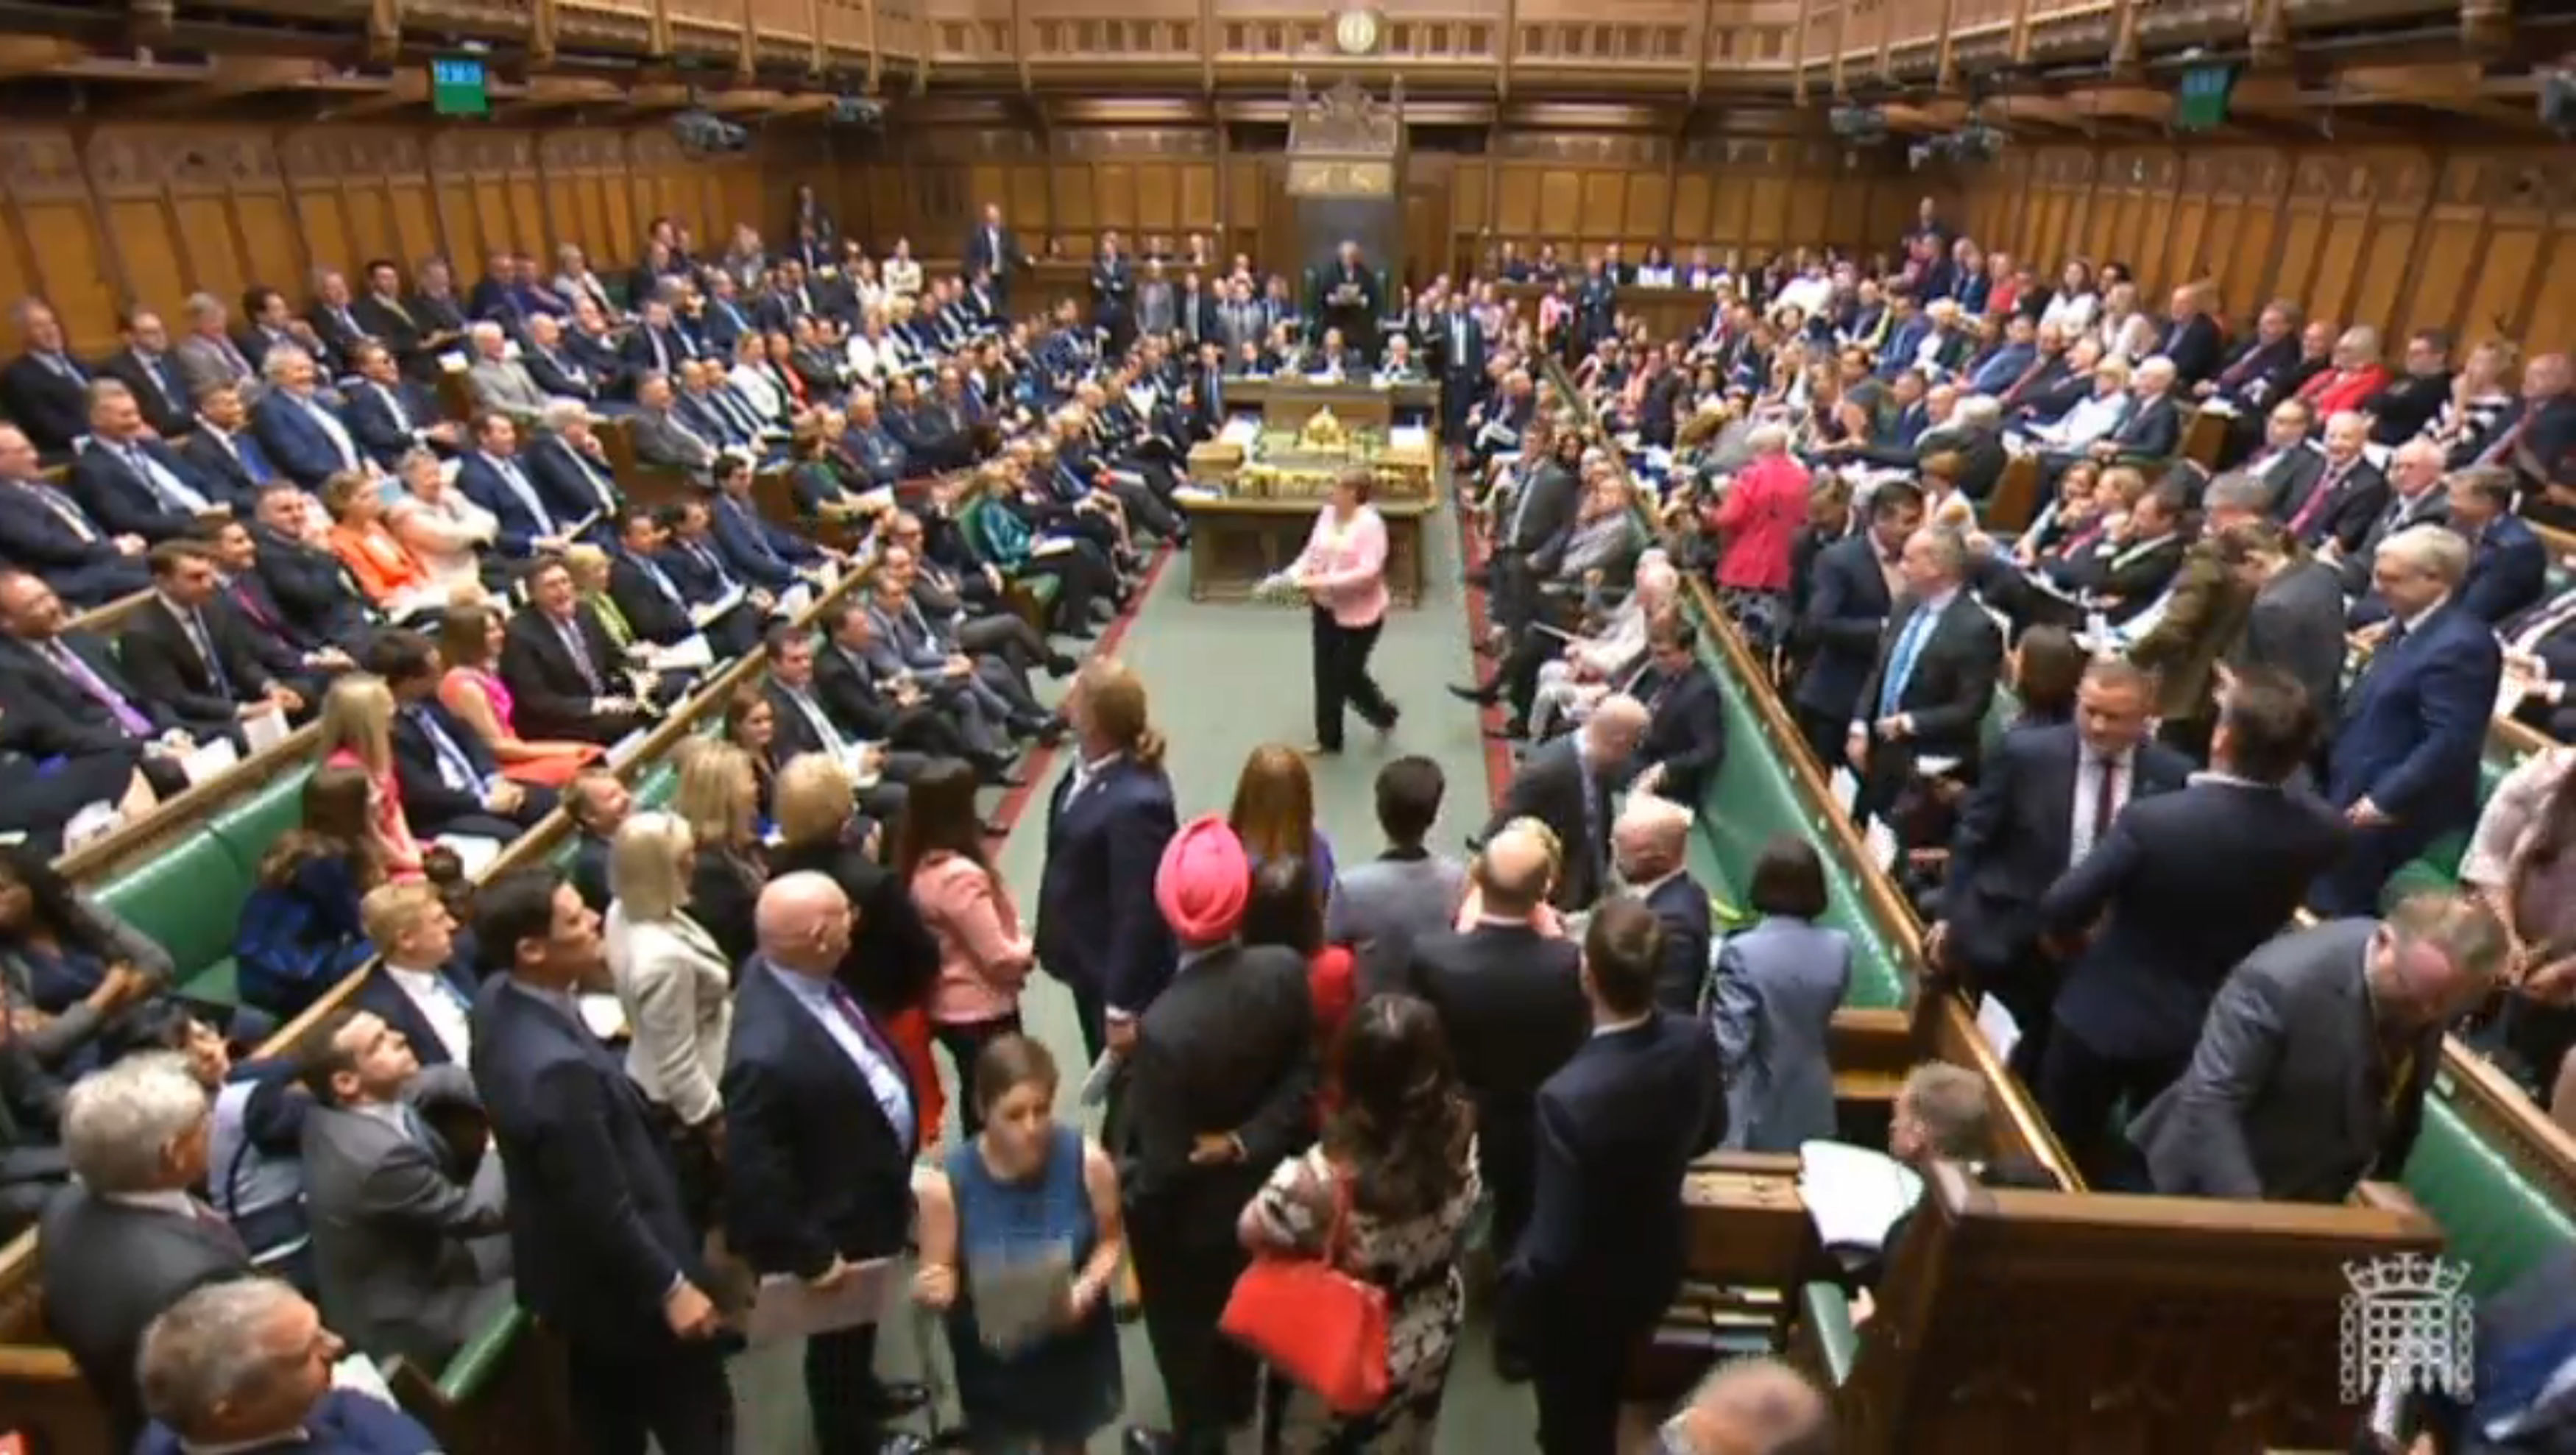 SNP MPs walk out in extraordinary scenes at PMQs.